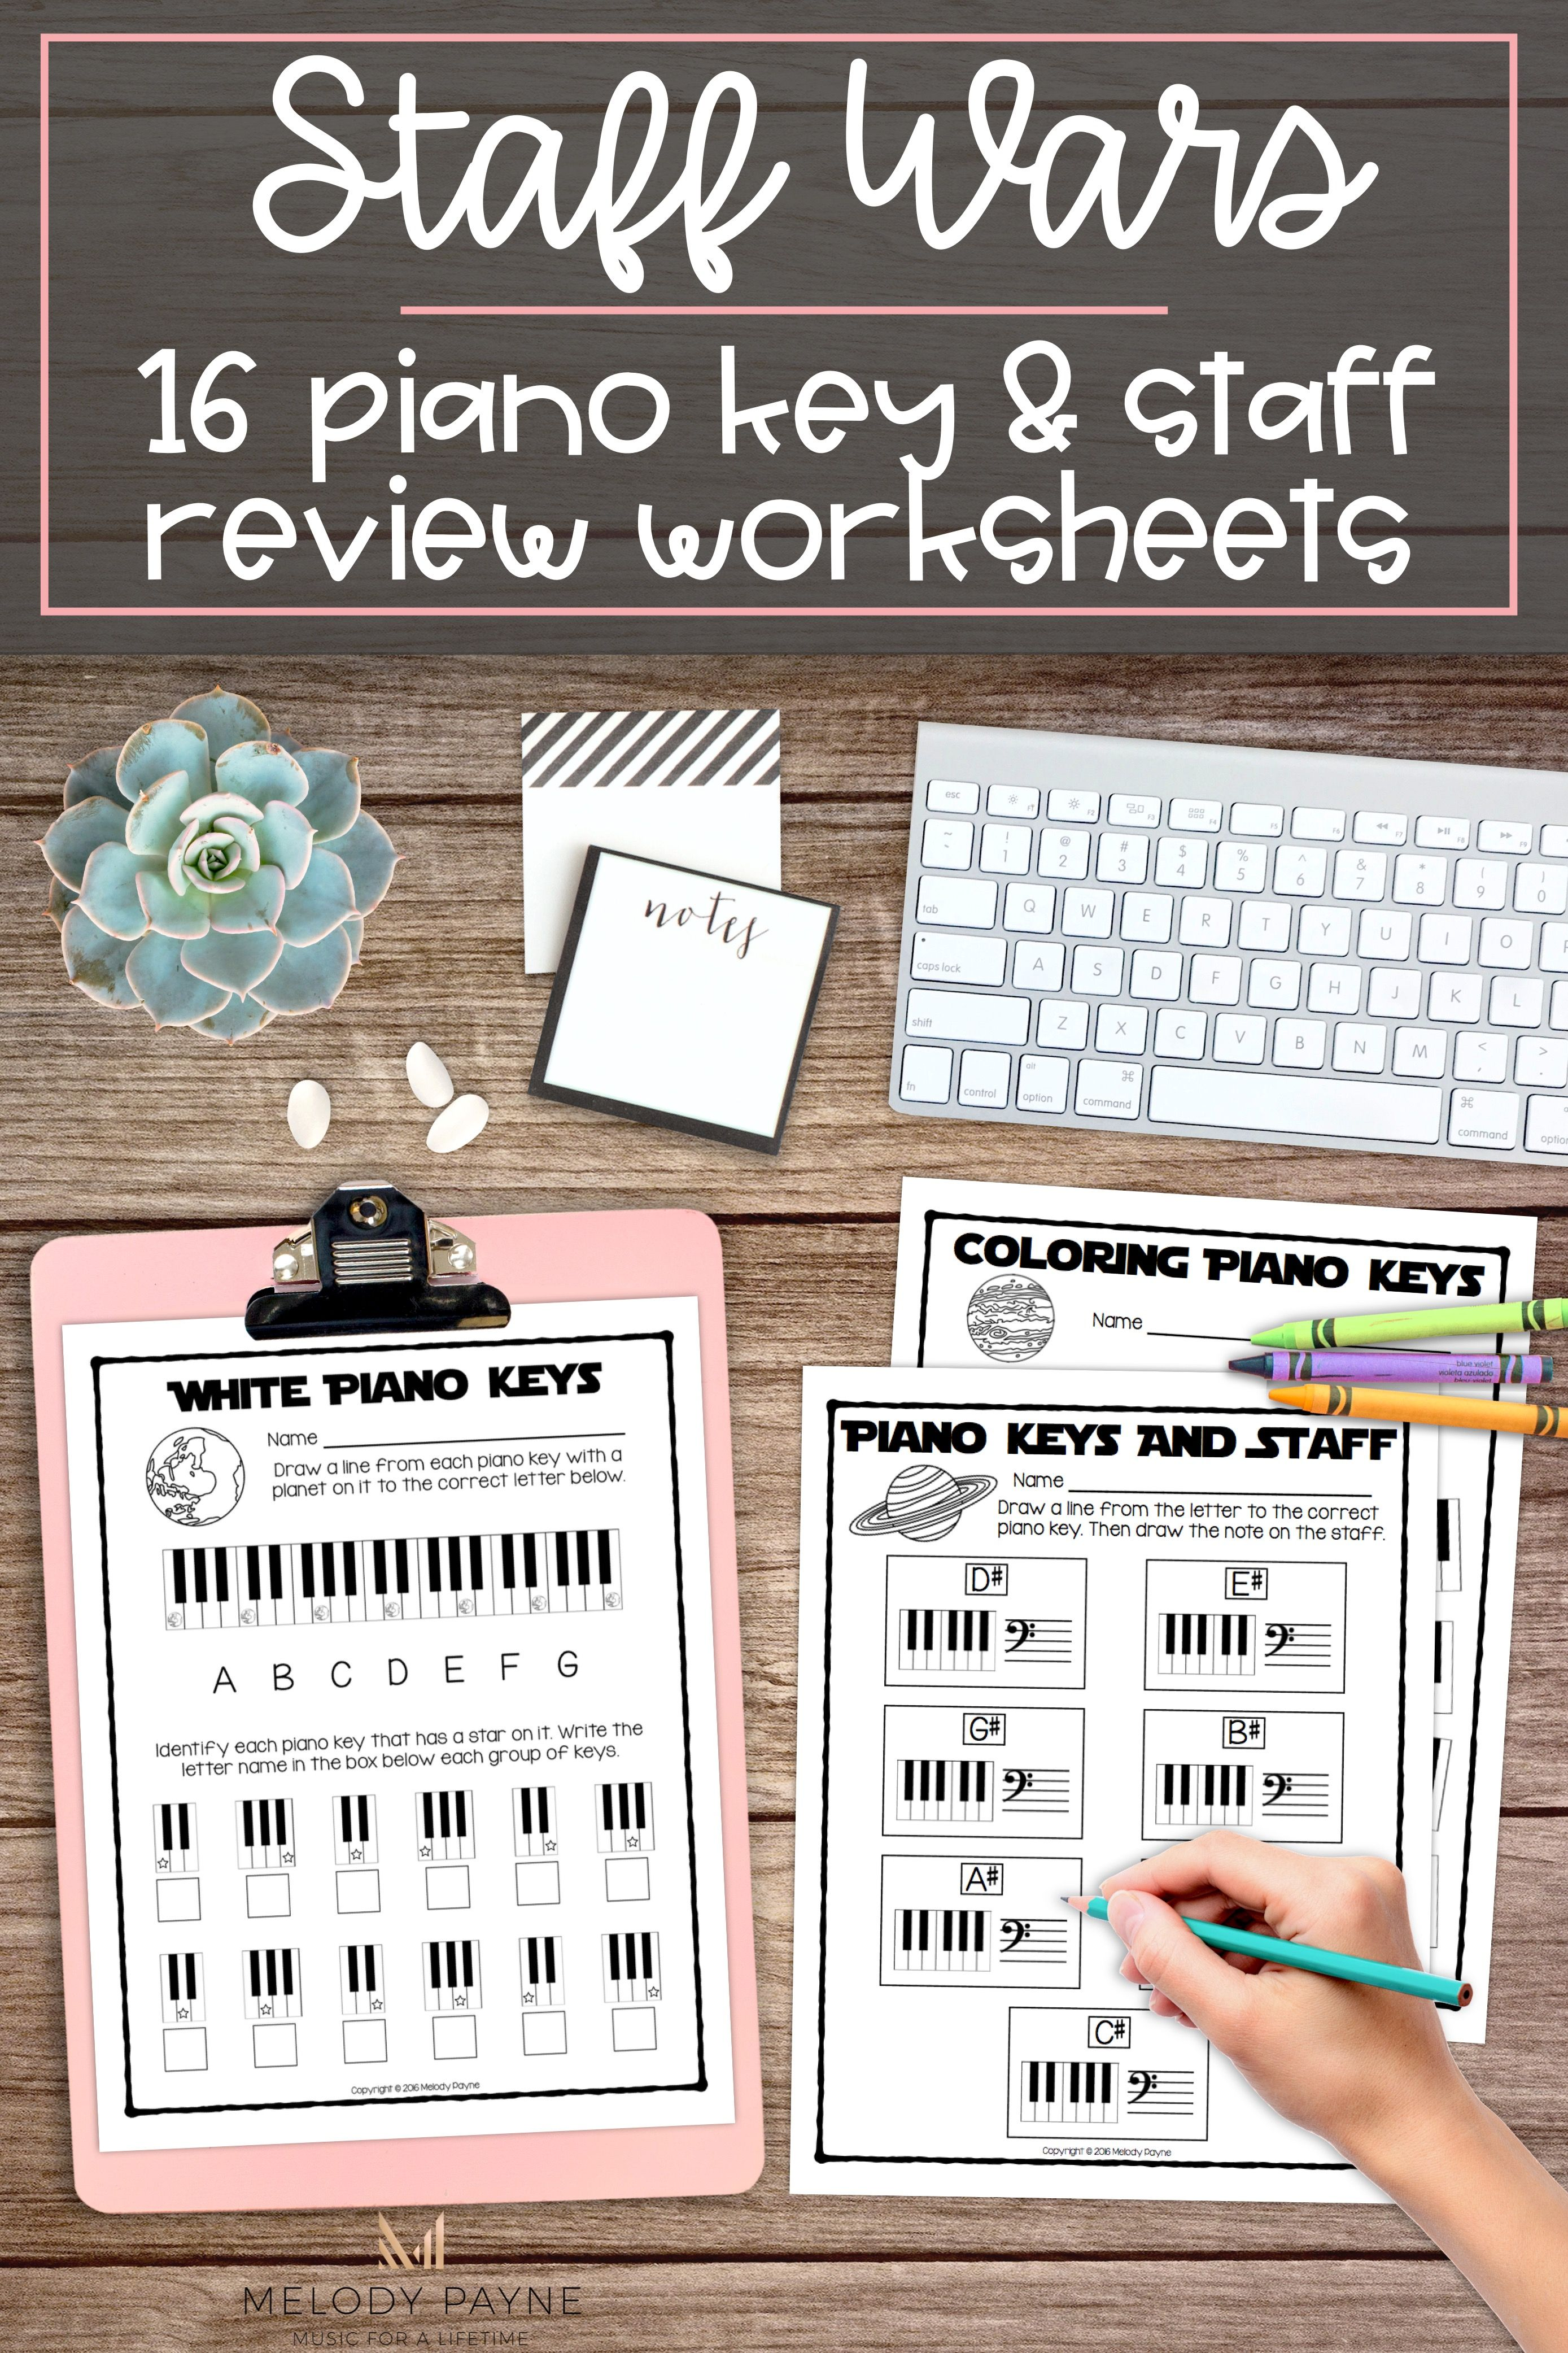 Staff Wars Piano Key Amp Staff Worksheets 16 No Prep Space